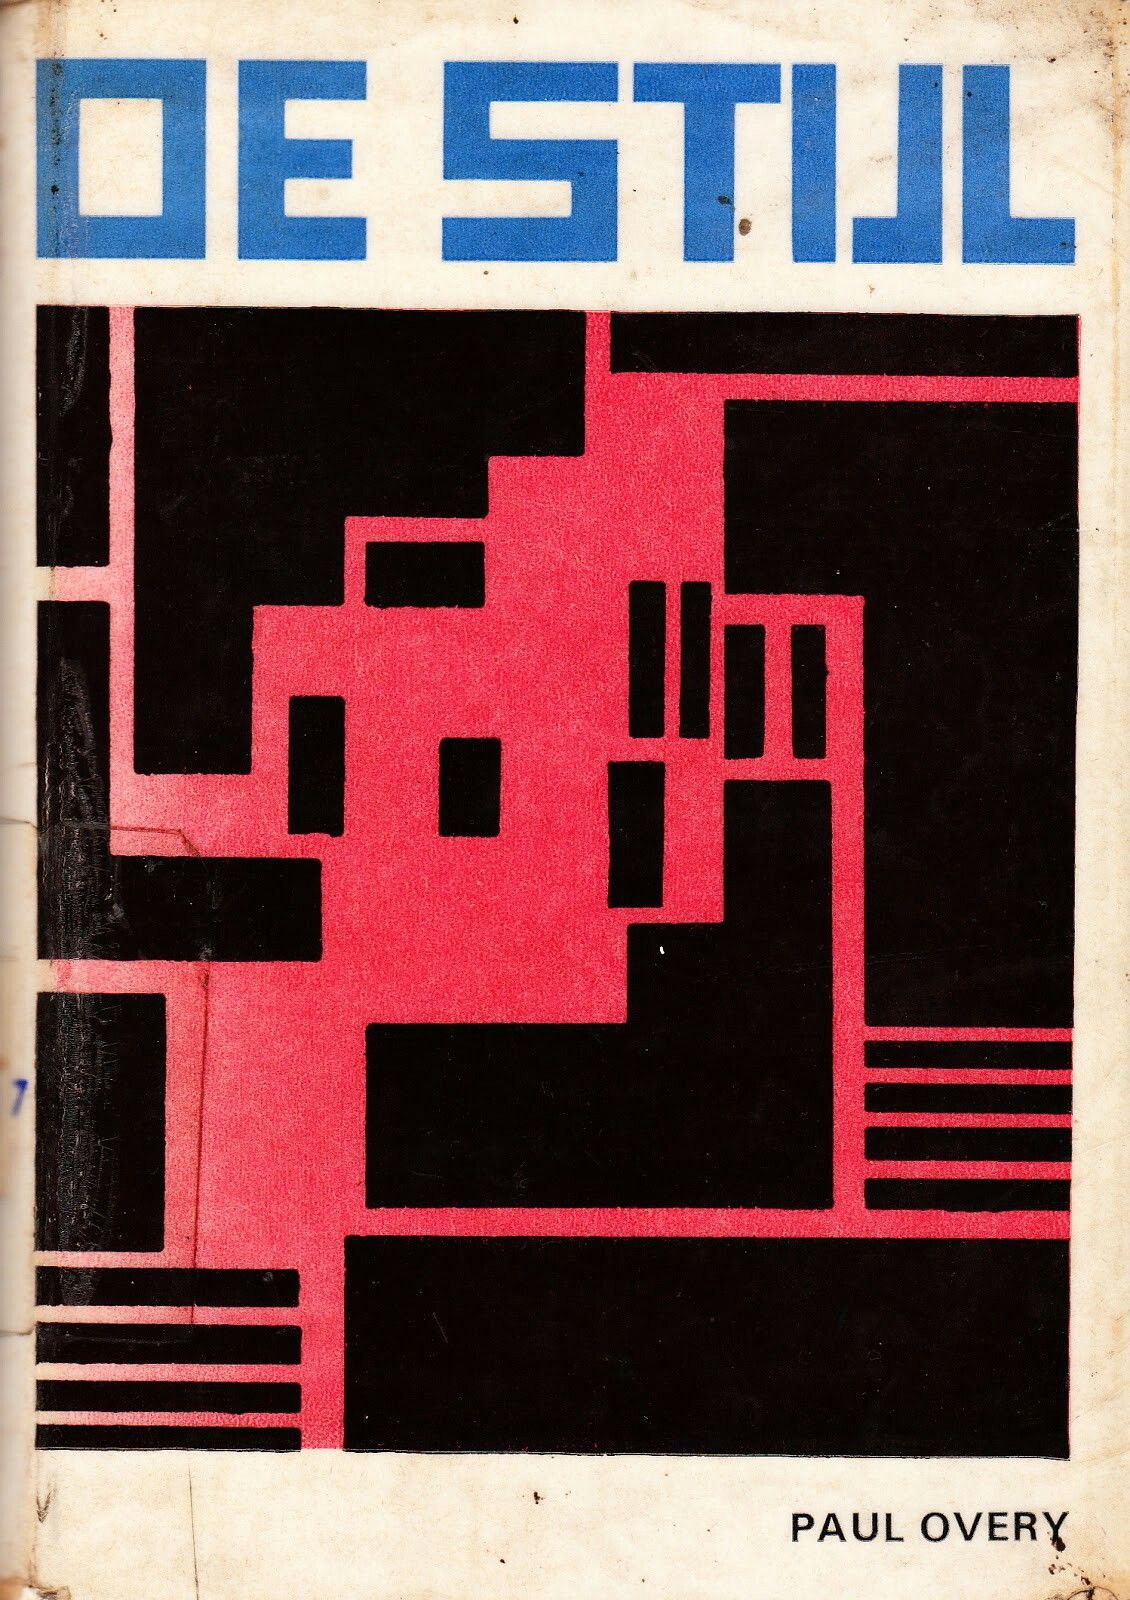 """DE STJIL""(Interpretation & Thoughts) Paul Overy, 1969 Studio Vista Ltd. London"